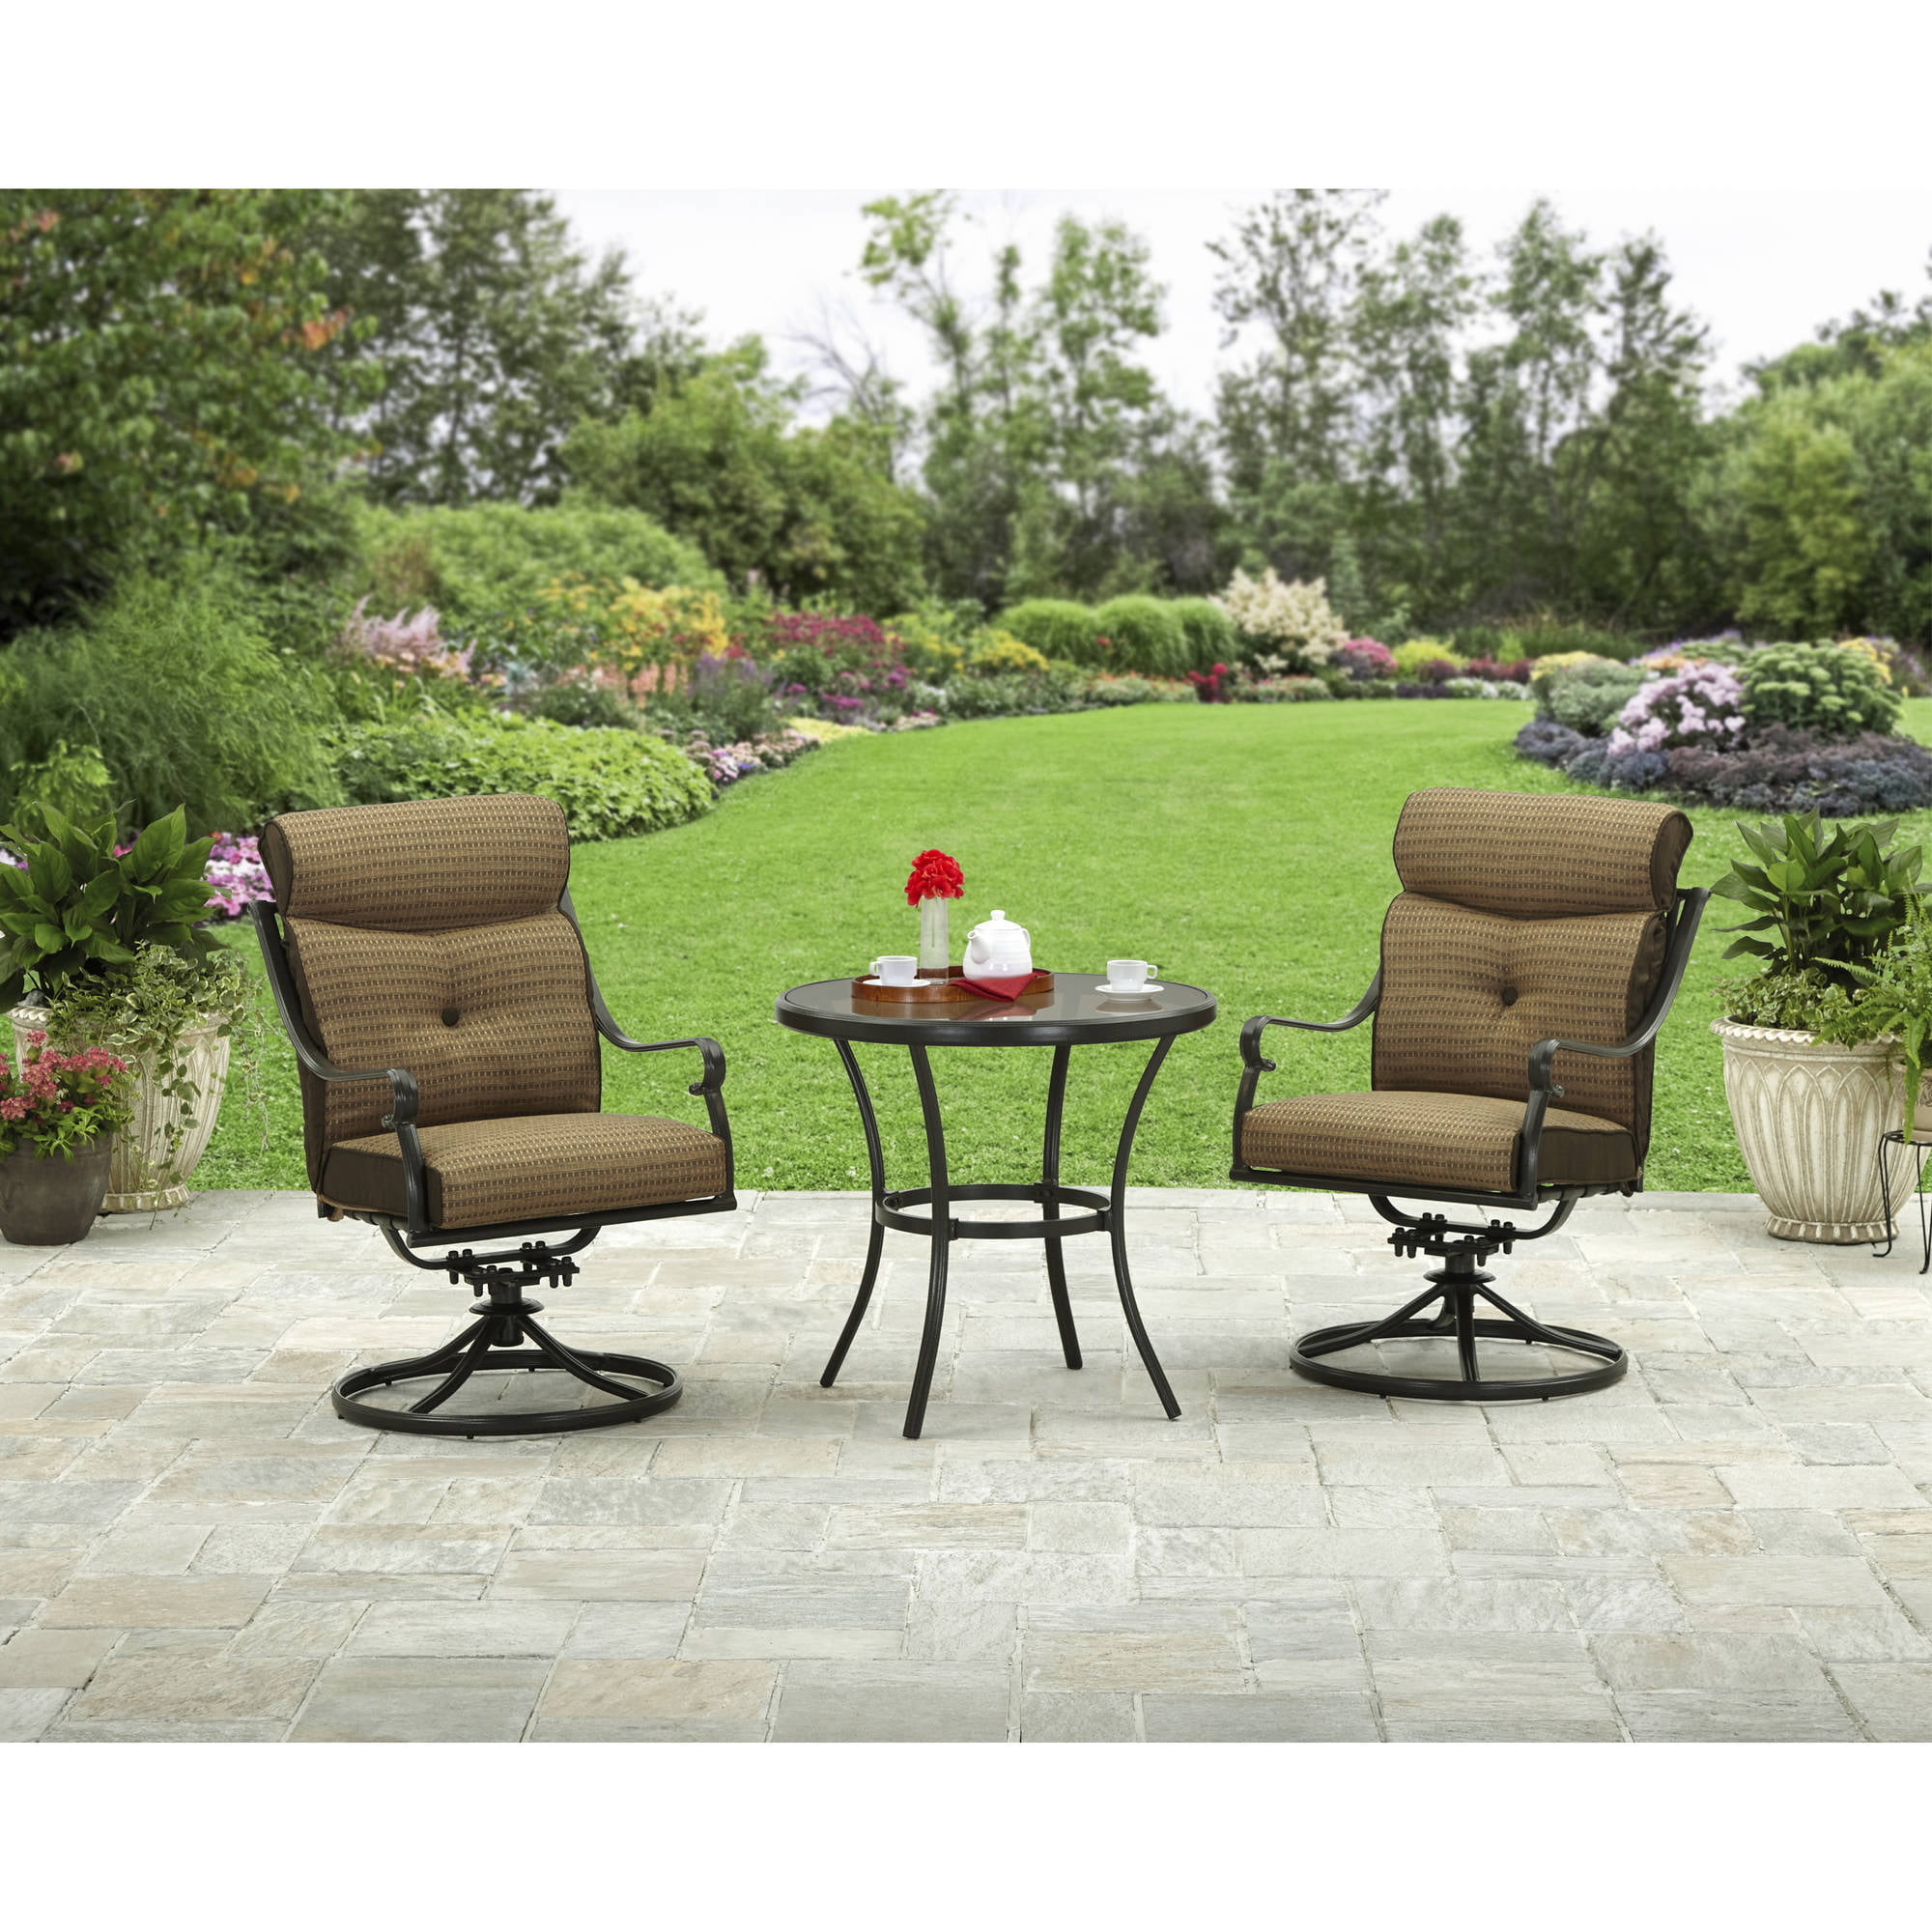 Better Homes and Gardens Bailey Ridge 3 Piece Outdoor Bistro Set by Hangzhou Jinshi Hardware Co., Ltd.